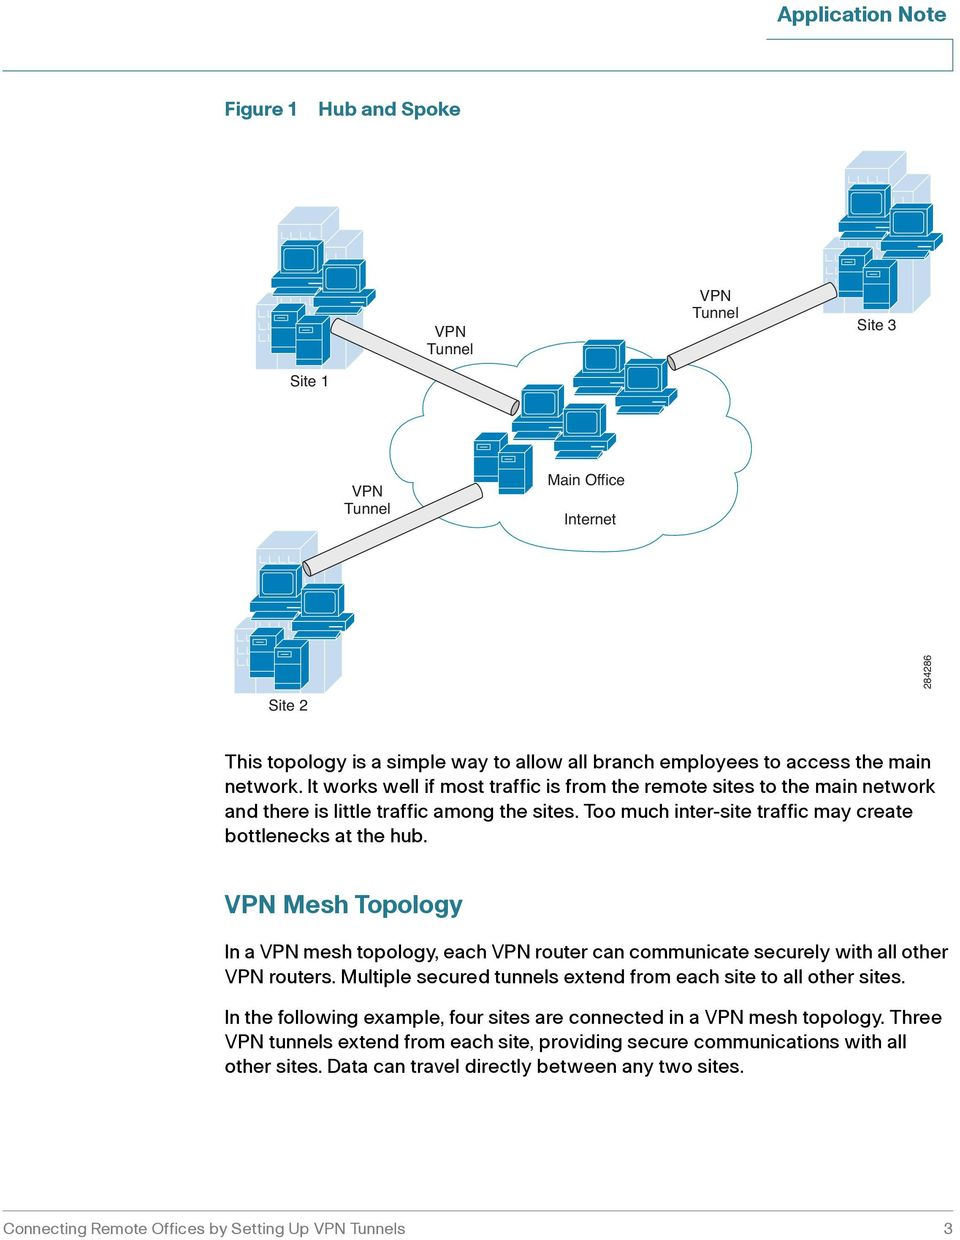 VPN Mesh Topology In a VPN mesh topology, each VPN router can communicate securely with all other VPN routers. Multiple secured tunnels extend from each site to all other sites.